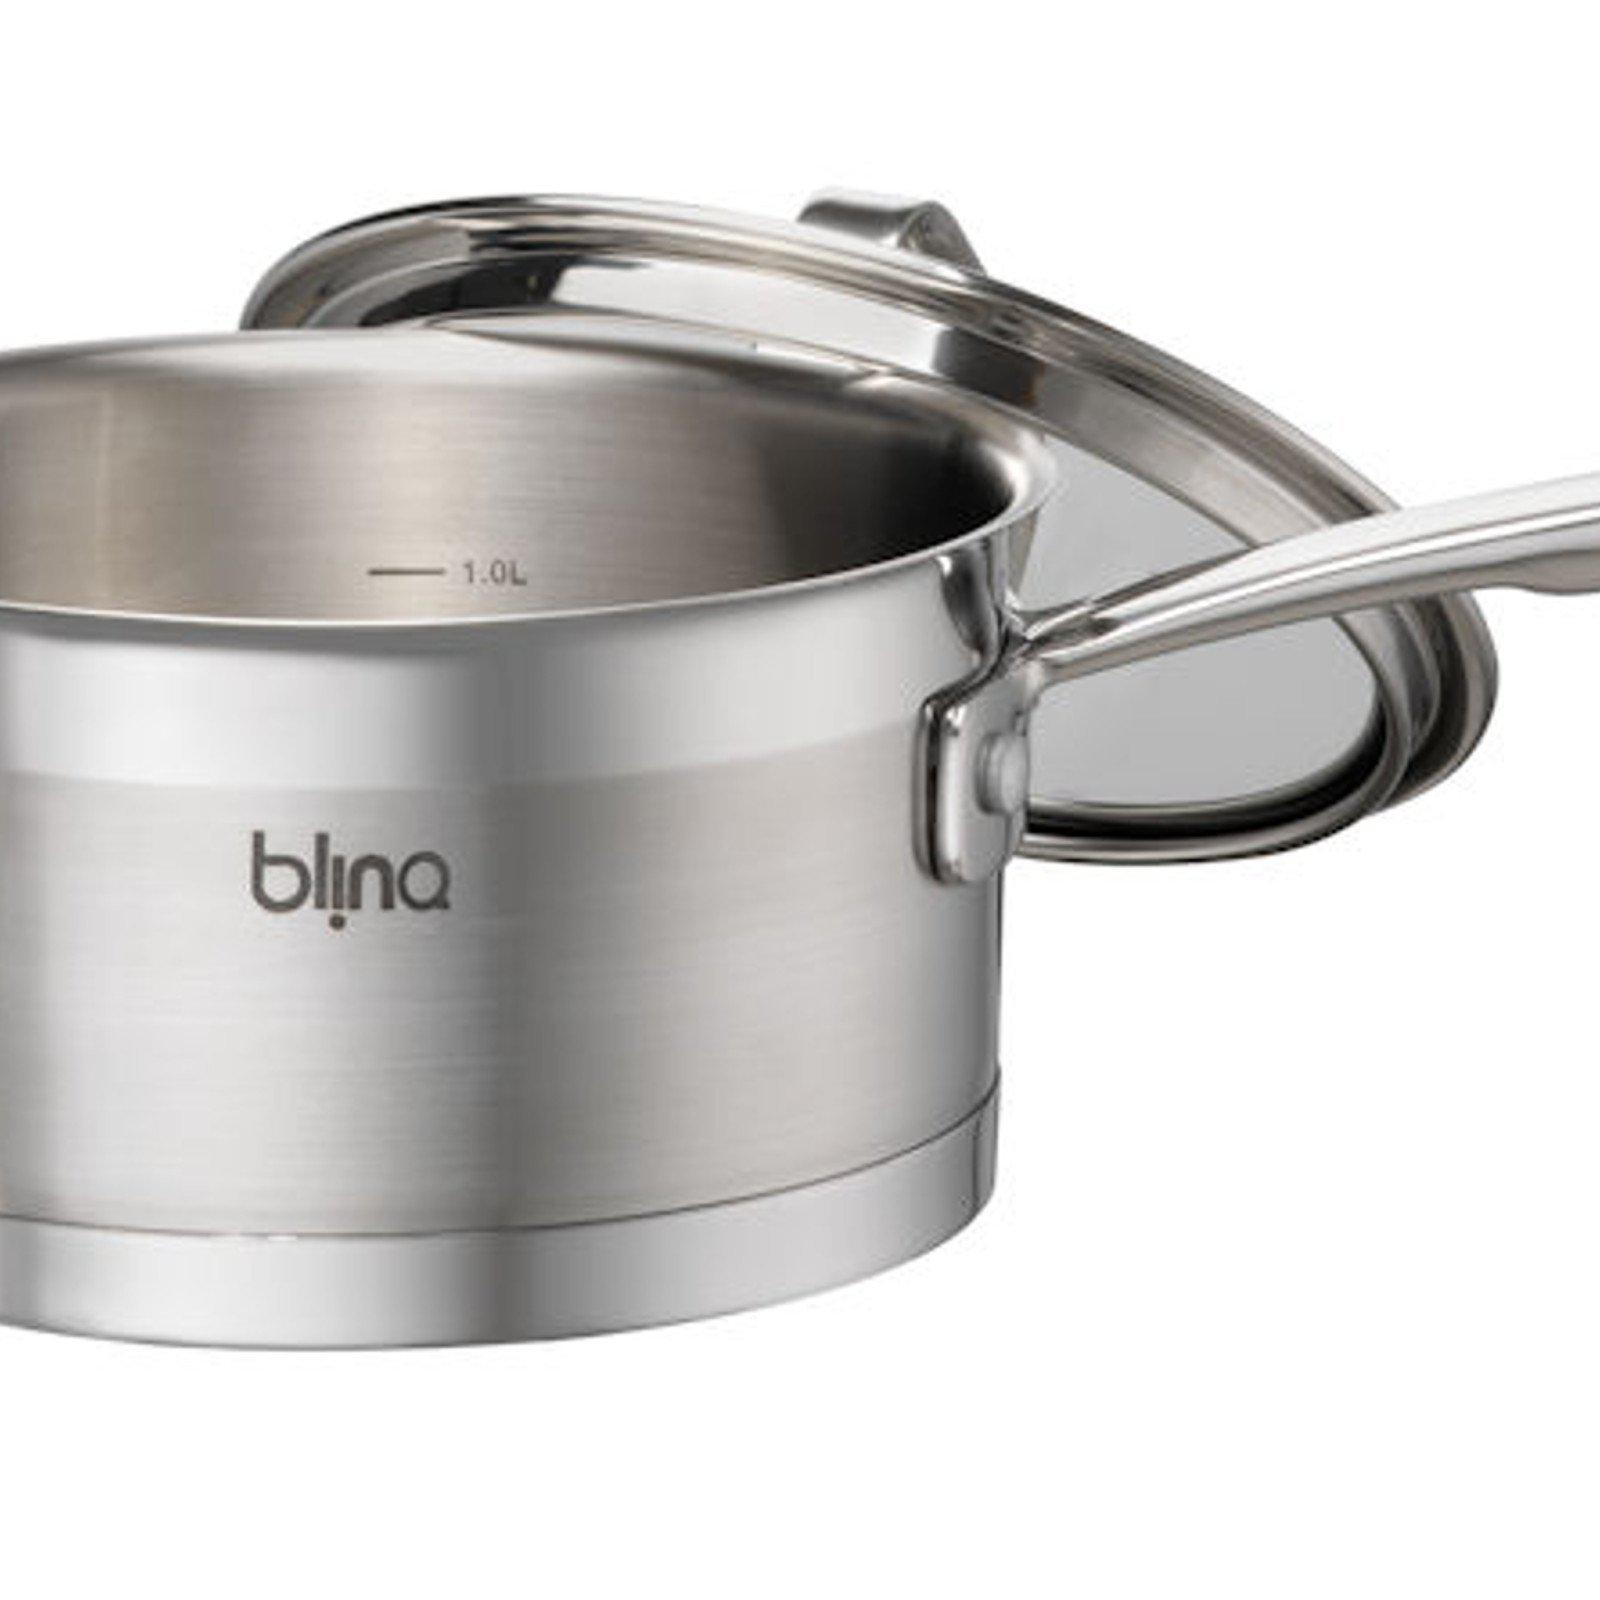 Blinq Gourmet Saucepan - 16 cm / 1.6 Litre Induction Compatible Saucepan with Lid-Stainless Steel Cookware-Chef's Quality Cookware